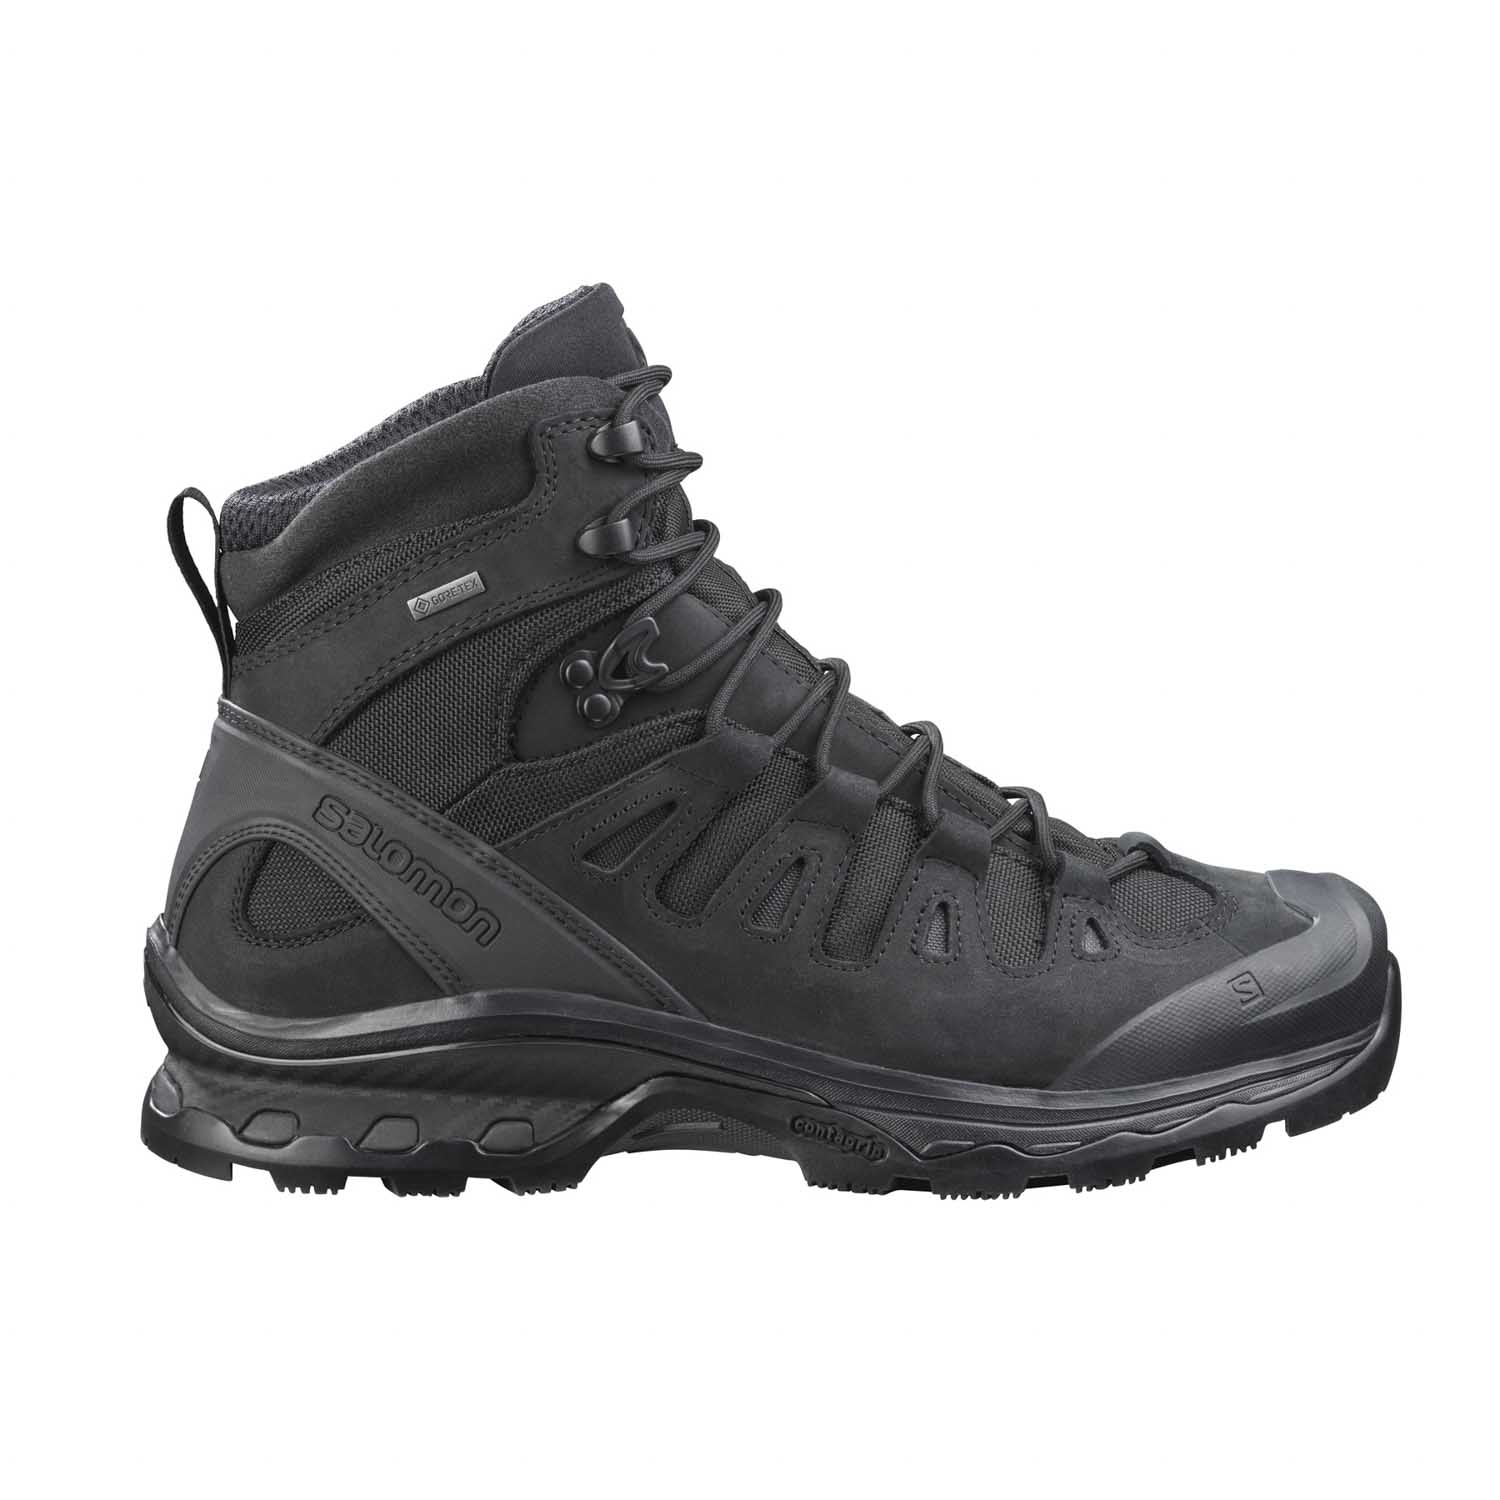 Salomon Quest 4D GTX Forces 2 Waterproof Tactical Boot